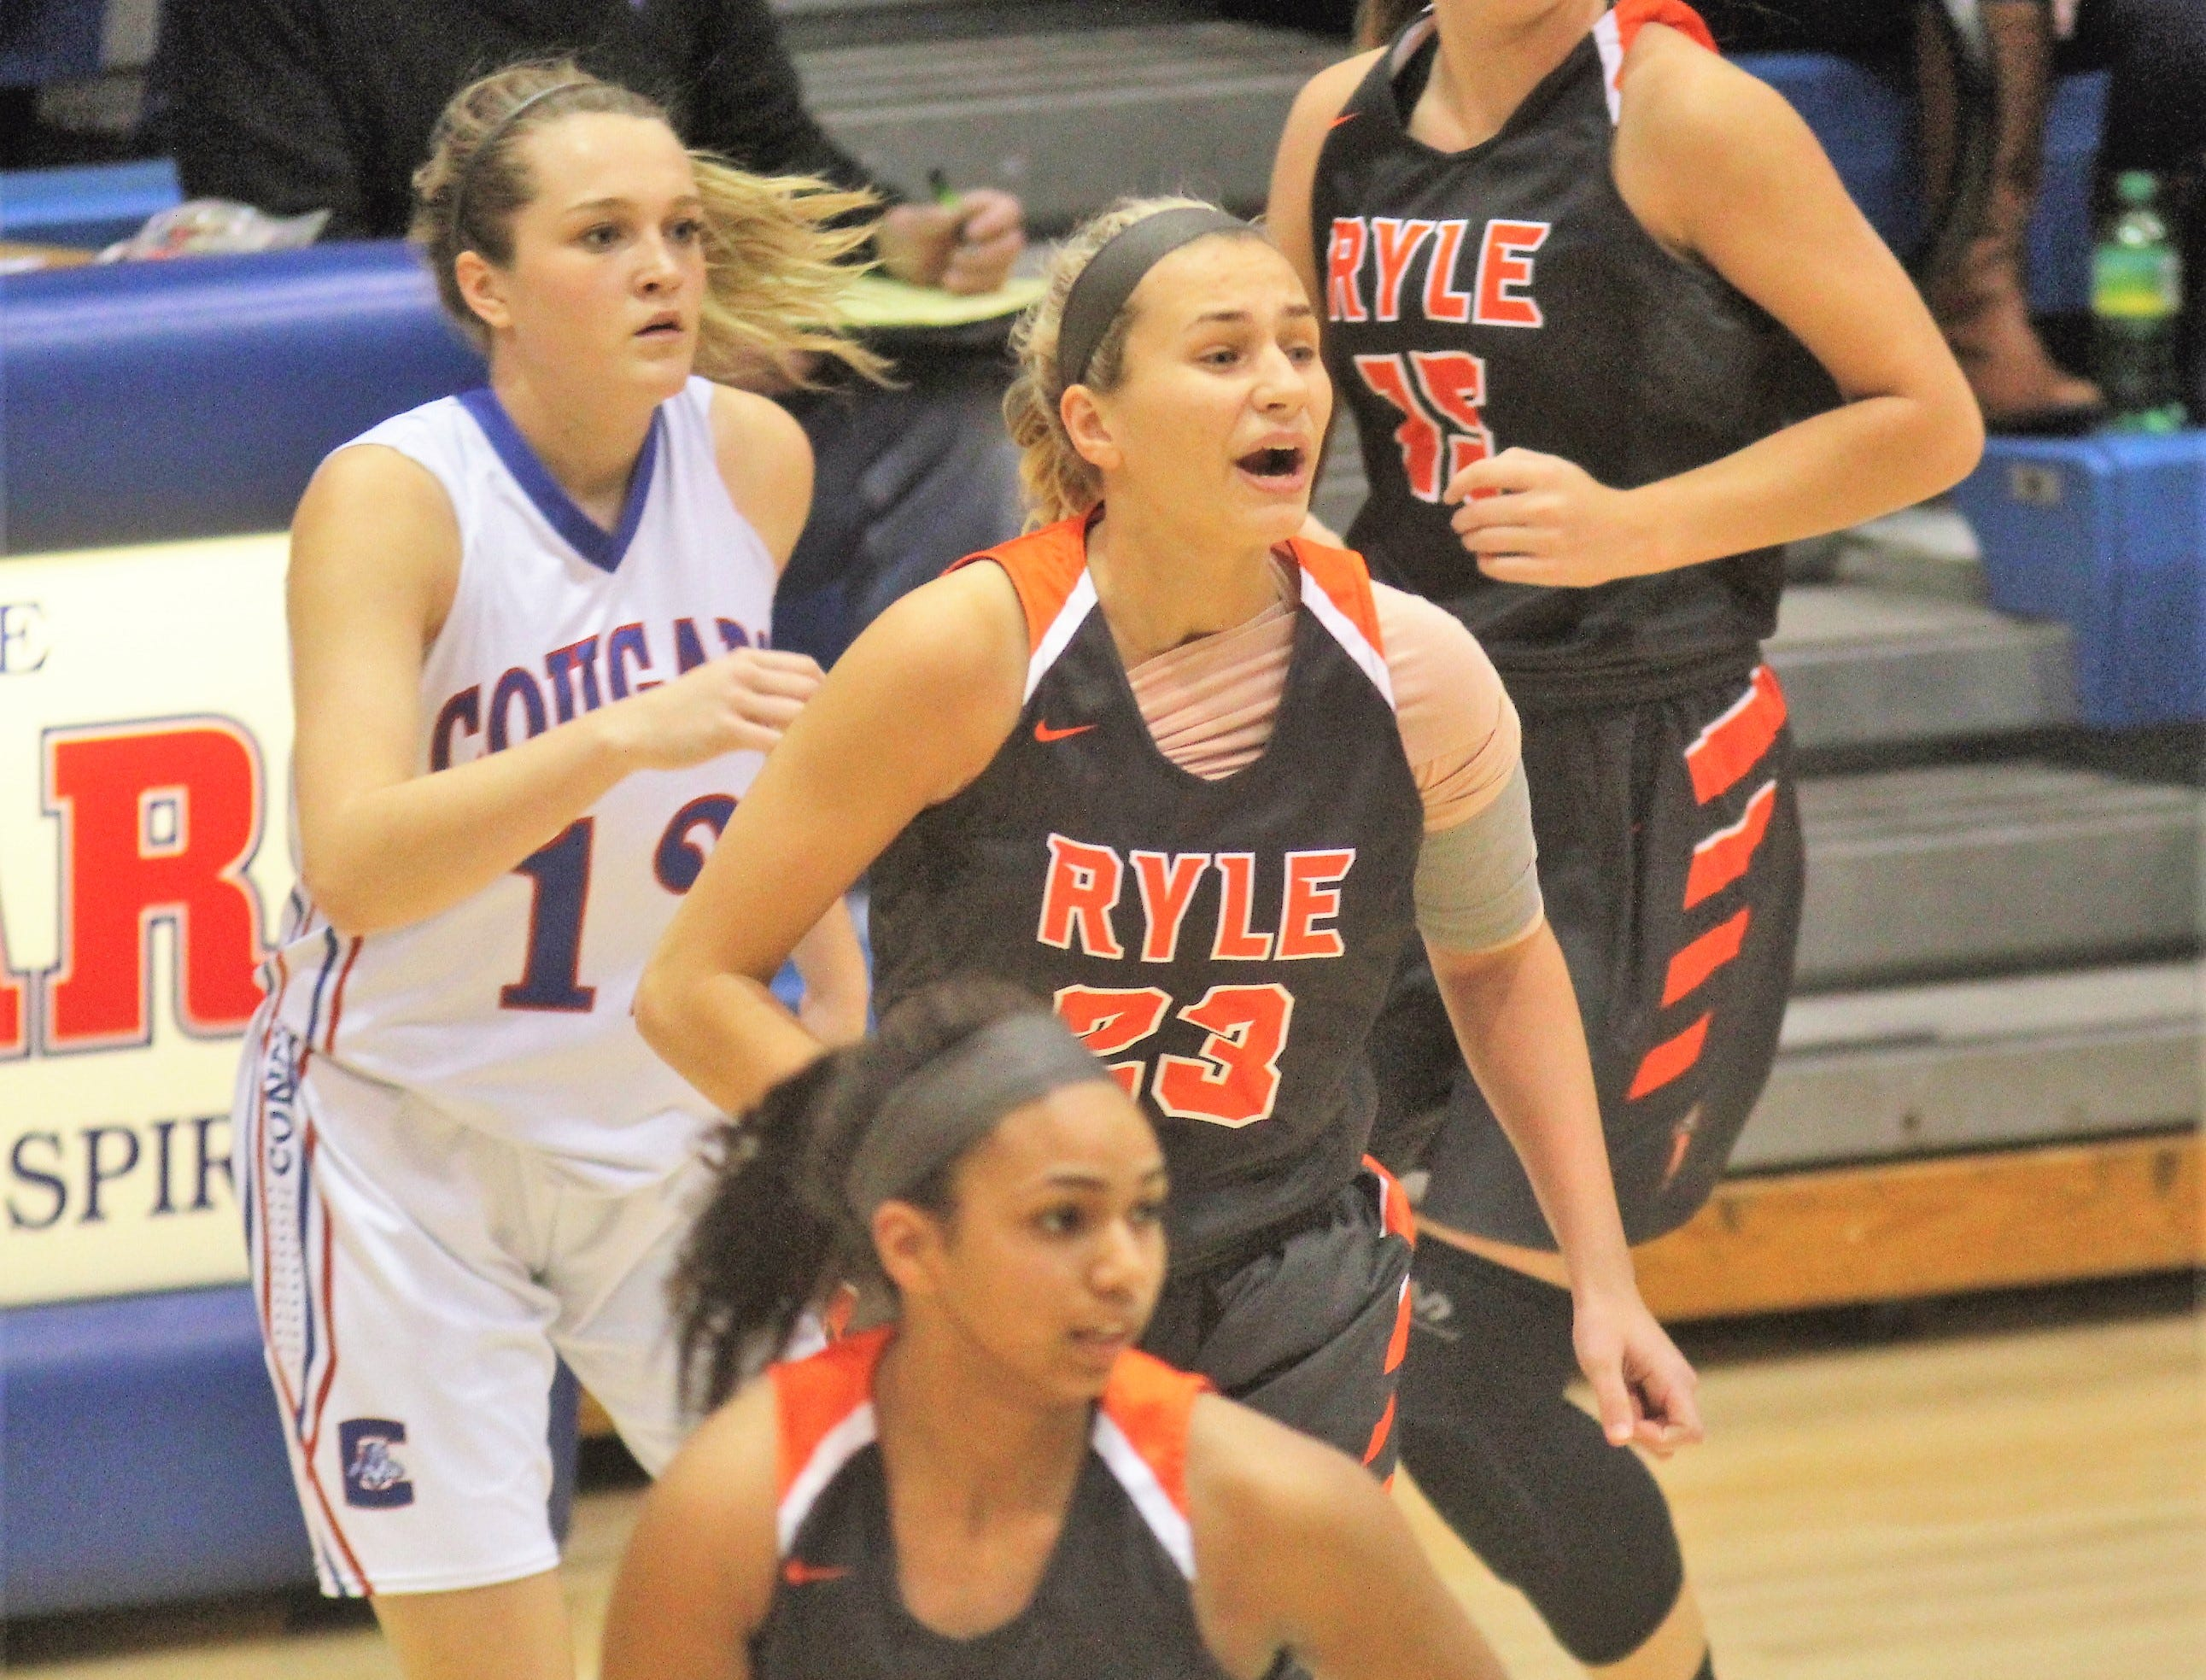 Ryle standout Maddie Scherr becomes all-time assists leader